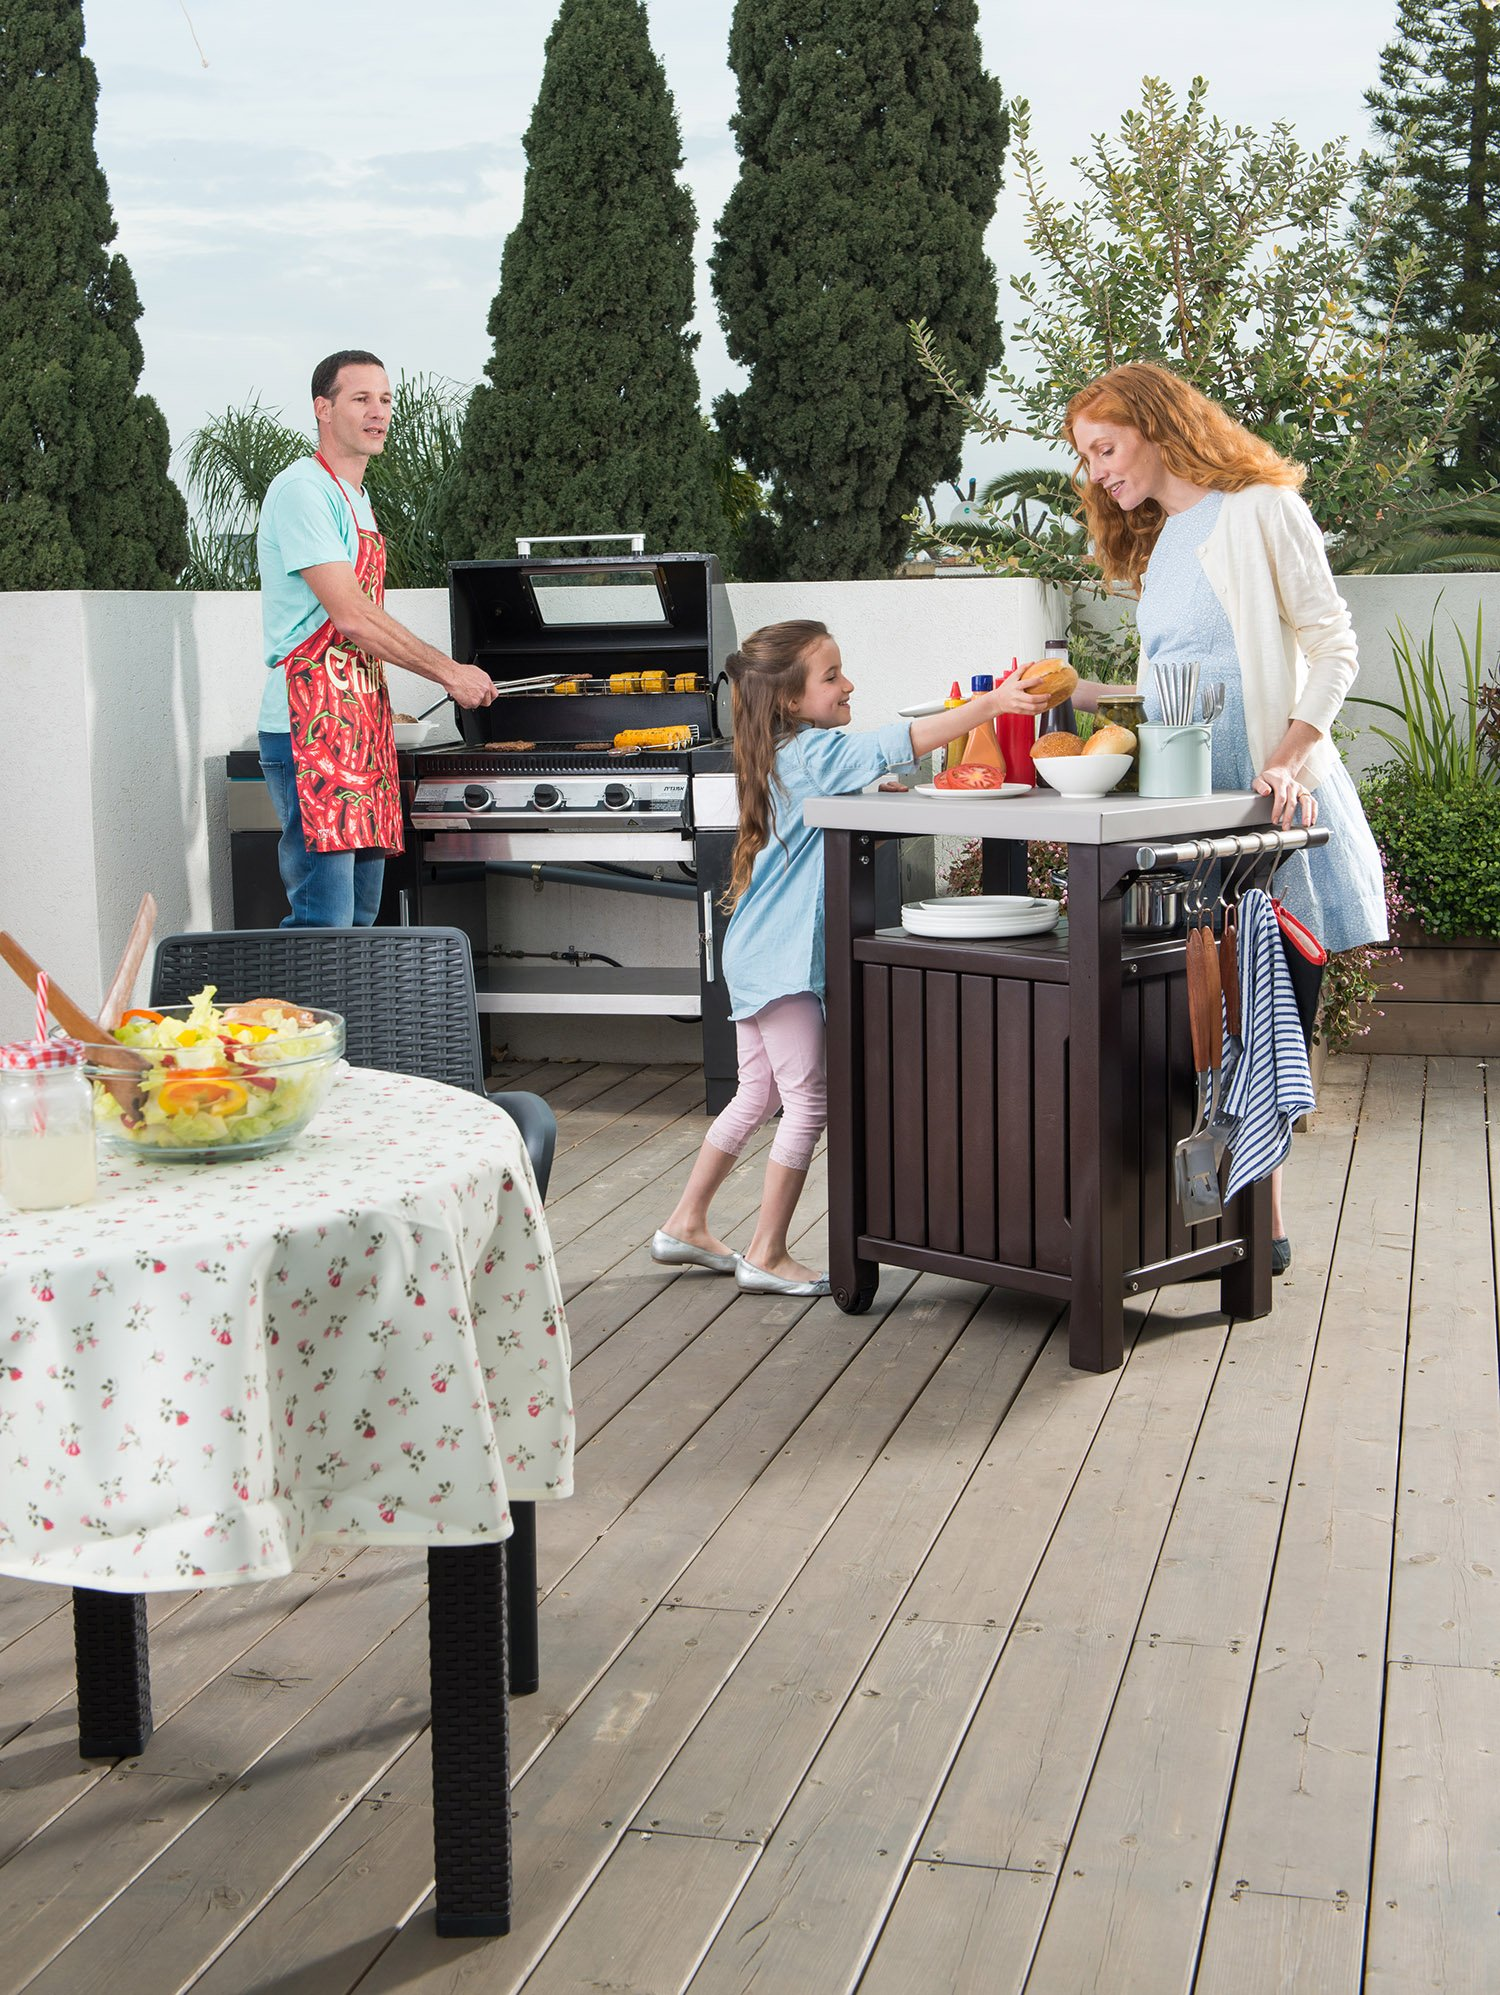 Outdoor Prep Station Serving BBQ Grilling Patio Deck Cabinet Backyard Table by Keter Products (Image #3)